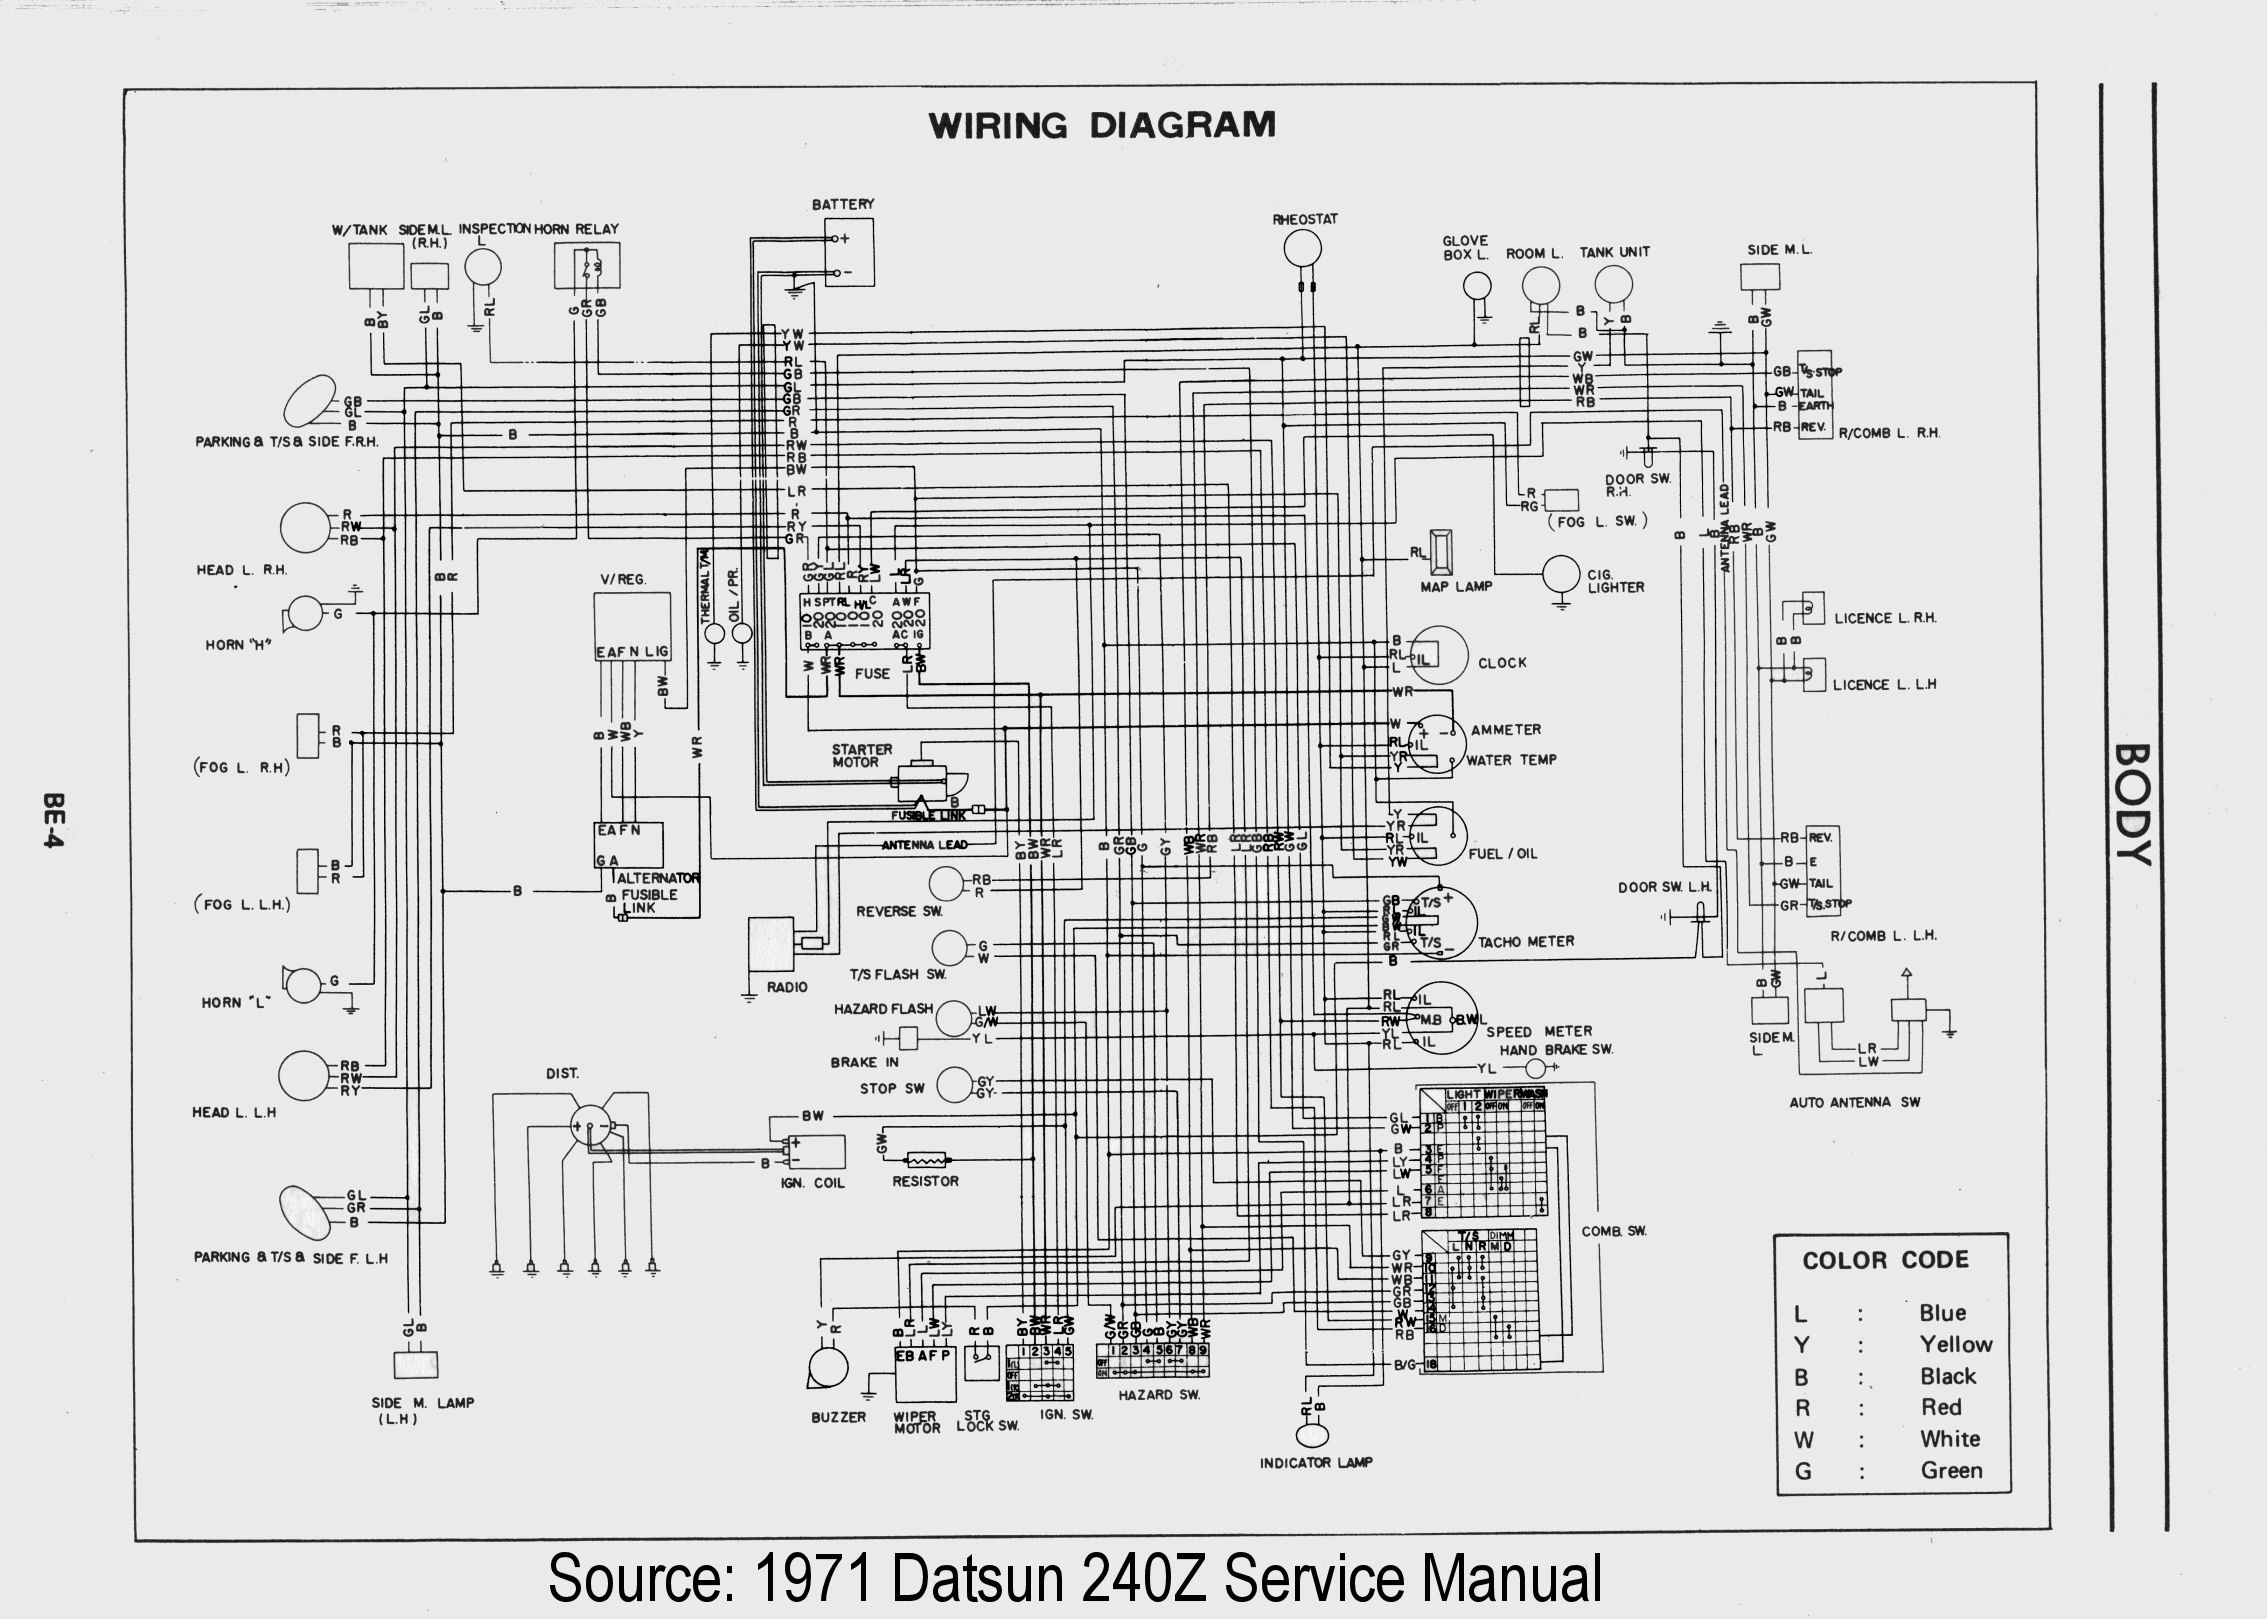 Wiring Diagram HiRes 2 240z wiring diagram 73 240z wiring diagram \u2022 wiring diagrams j In a 98 Dodge Dakota Wiring Harness at pacquiaovsvargaslive.co